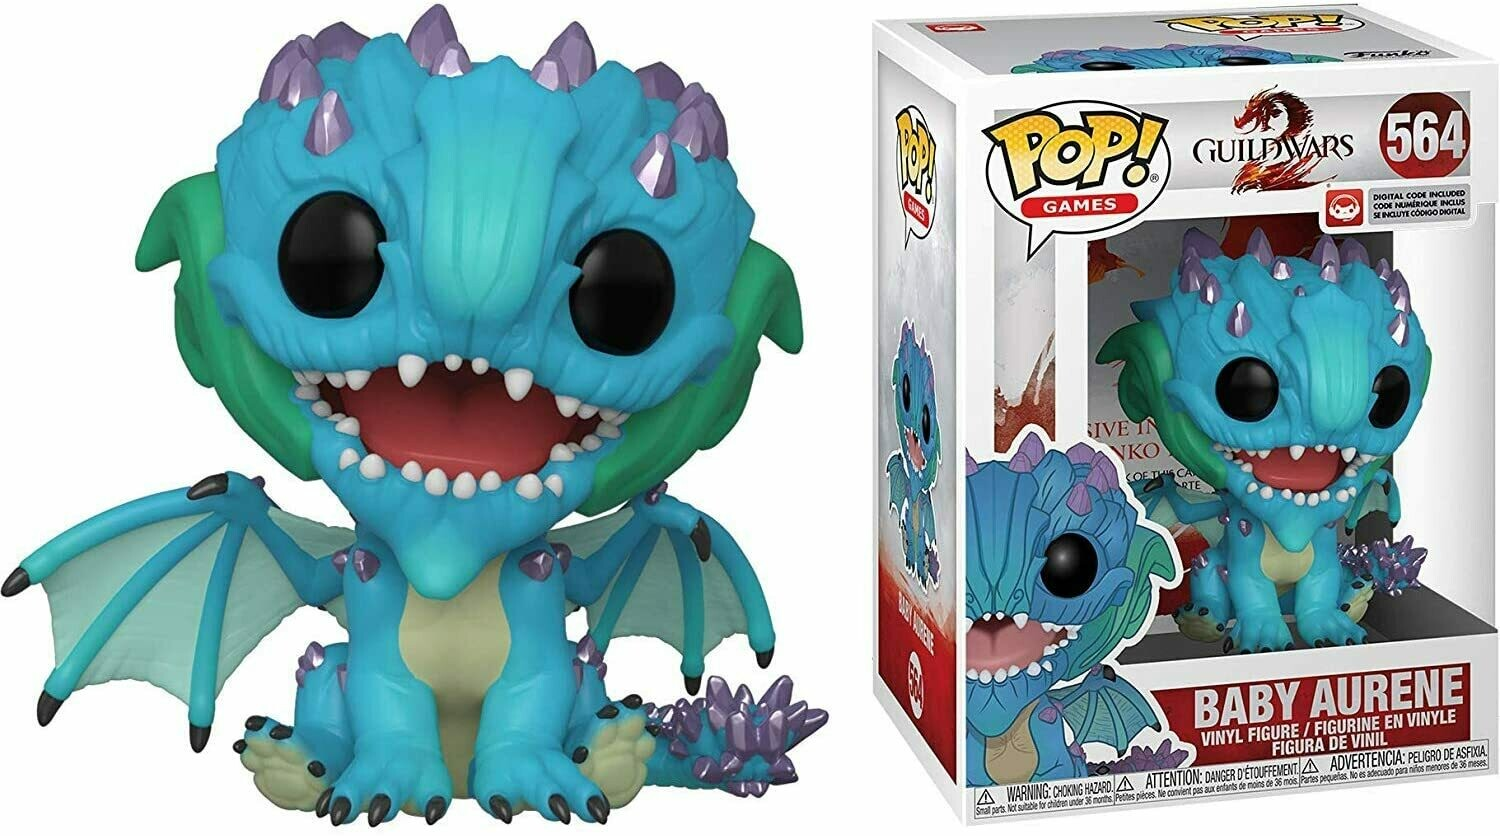 Funko Pop! Baby Aurene #564 Guild Wars 2